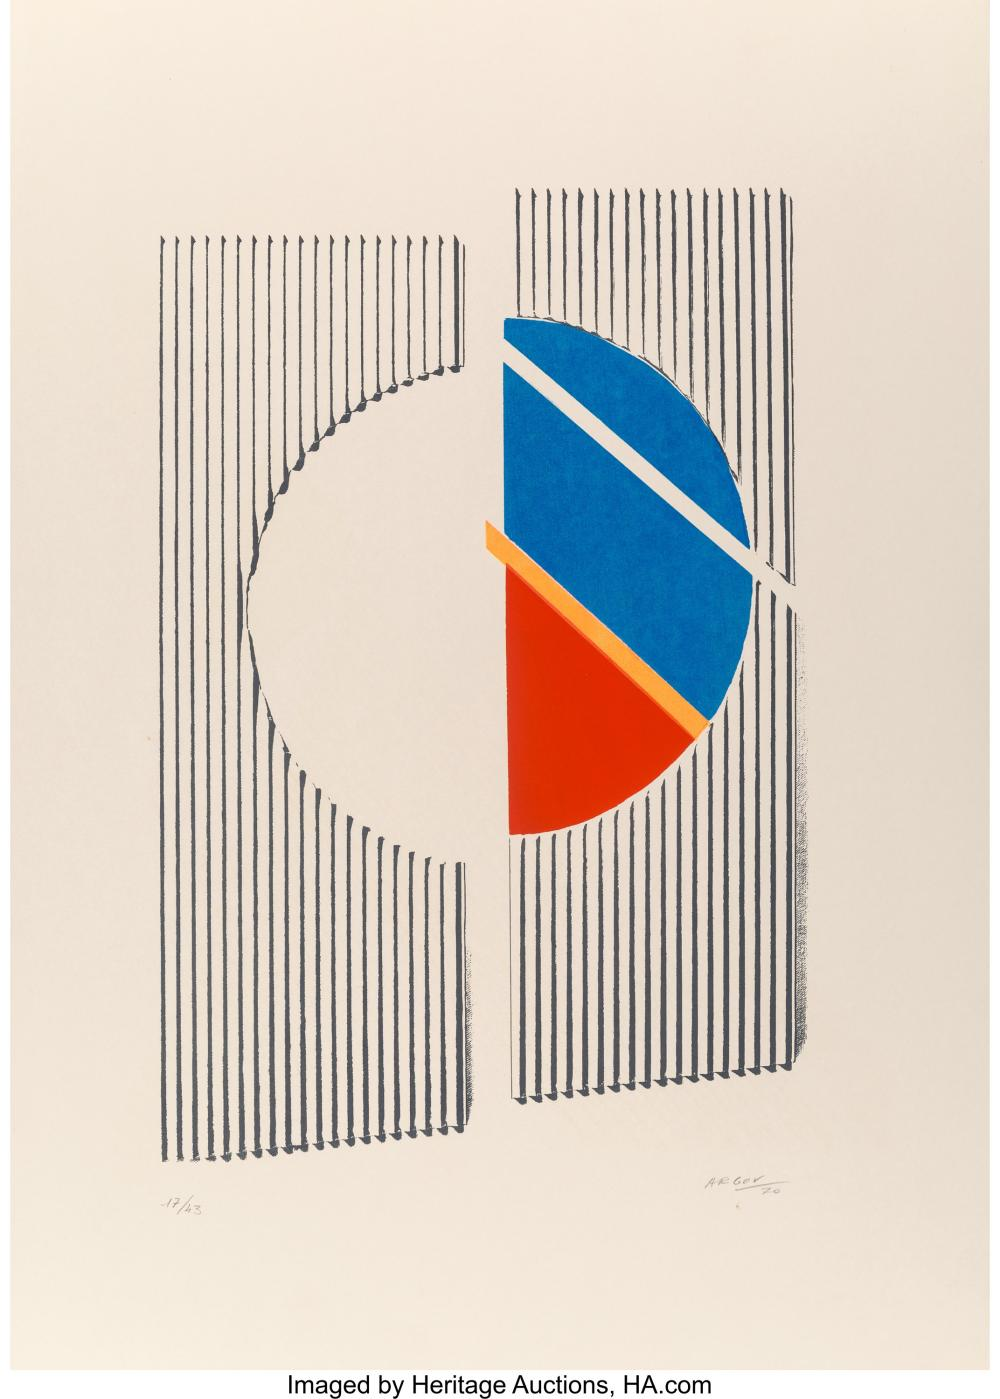 Lot 21344: Michael Argov (1920-1982) Untitled 2, 1970 Serigraph in colors on wove paper 27-